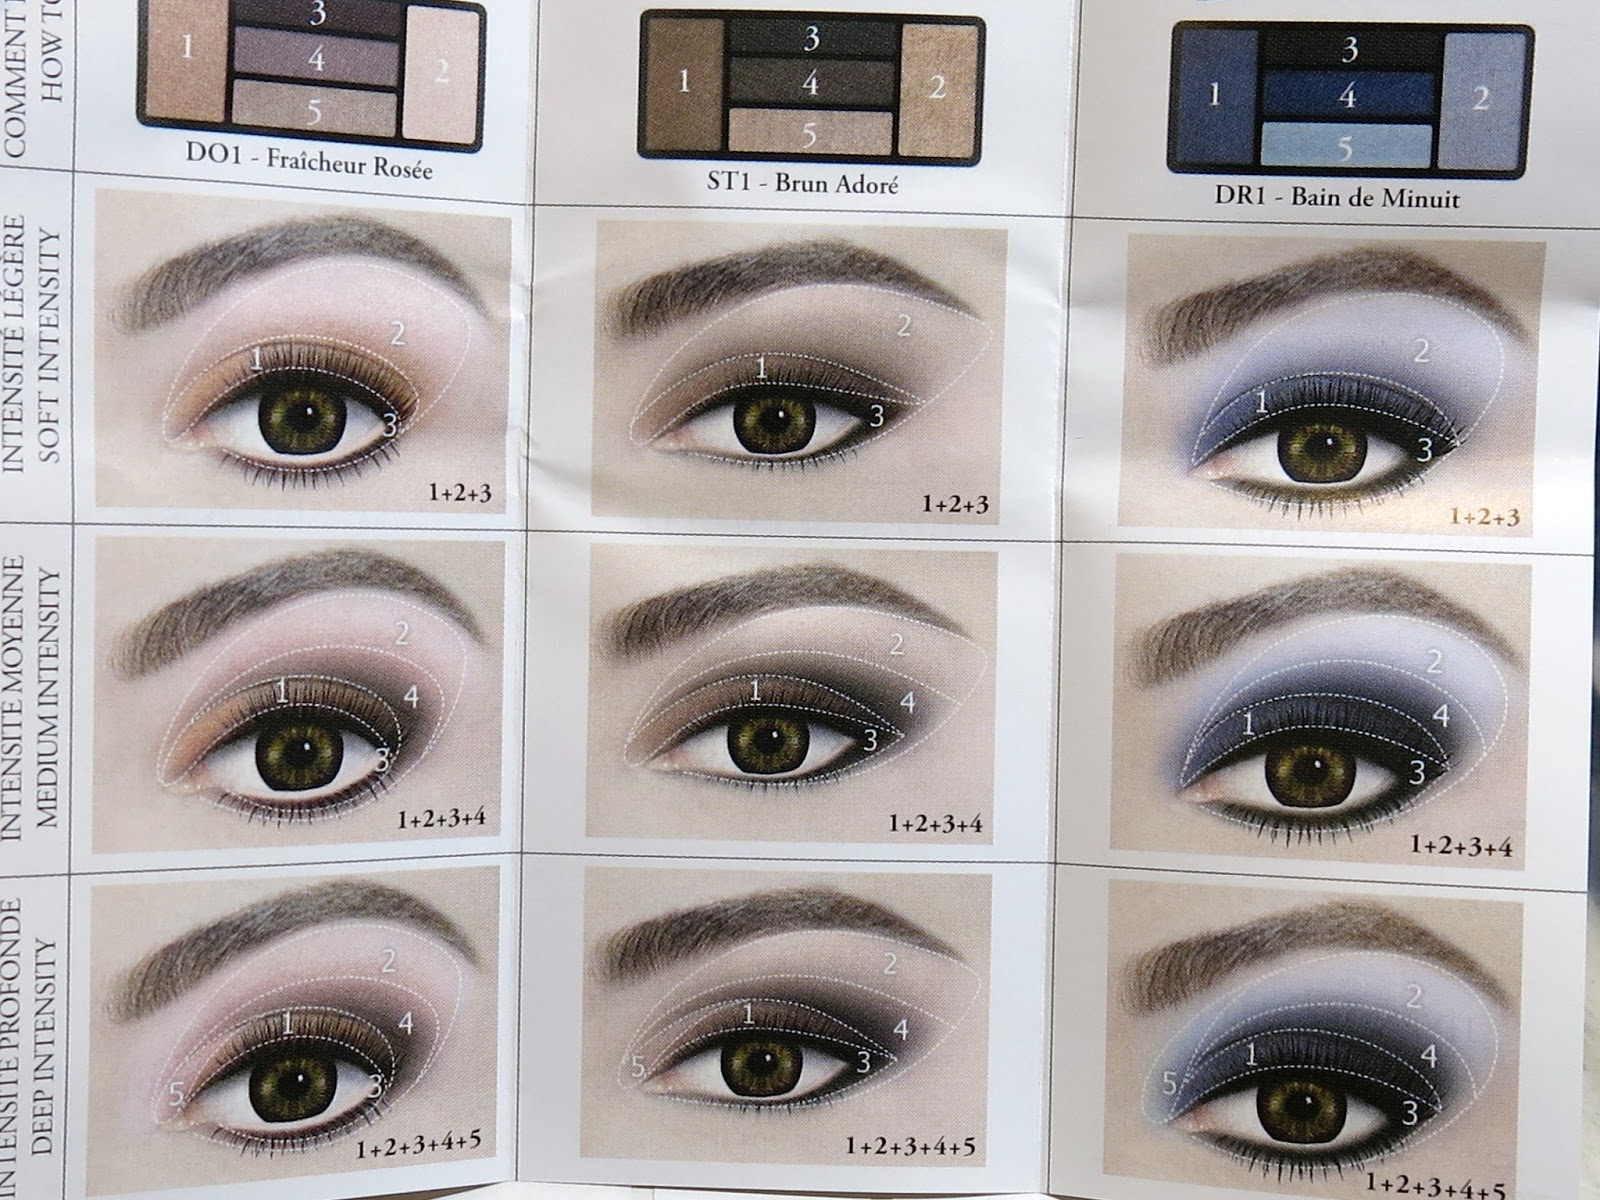 e790d9eb07f There are 12 different palettes in this range, and aside from the 4 I  swatched above, there is also a beautiful deep purple I'd highly recommend,  ...